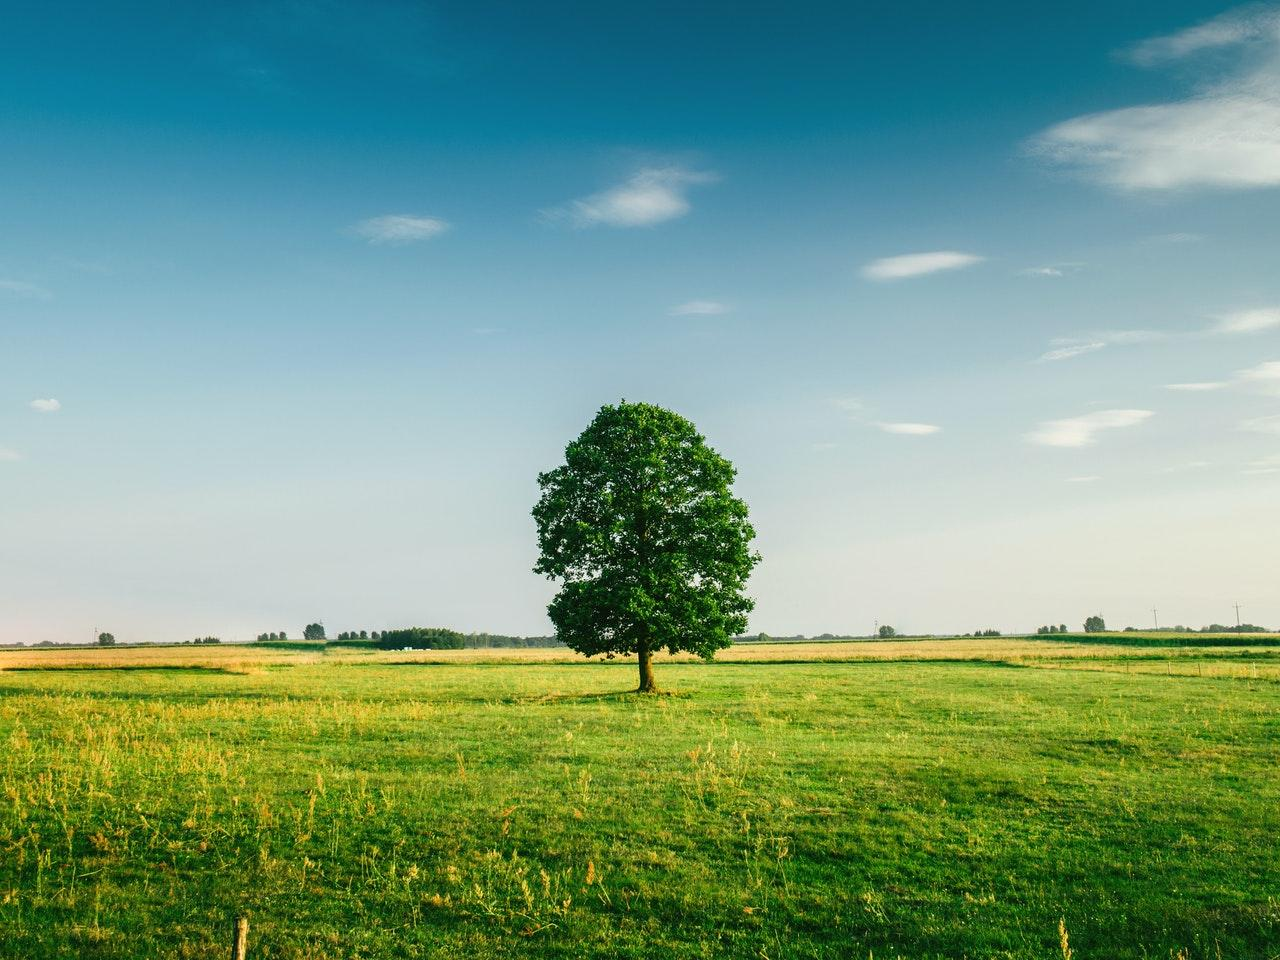 tree-field-horizon-countryside-81413-1502469186307.jpeg